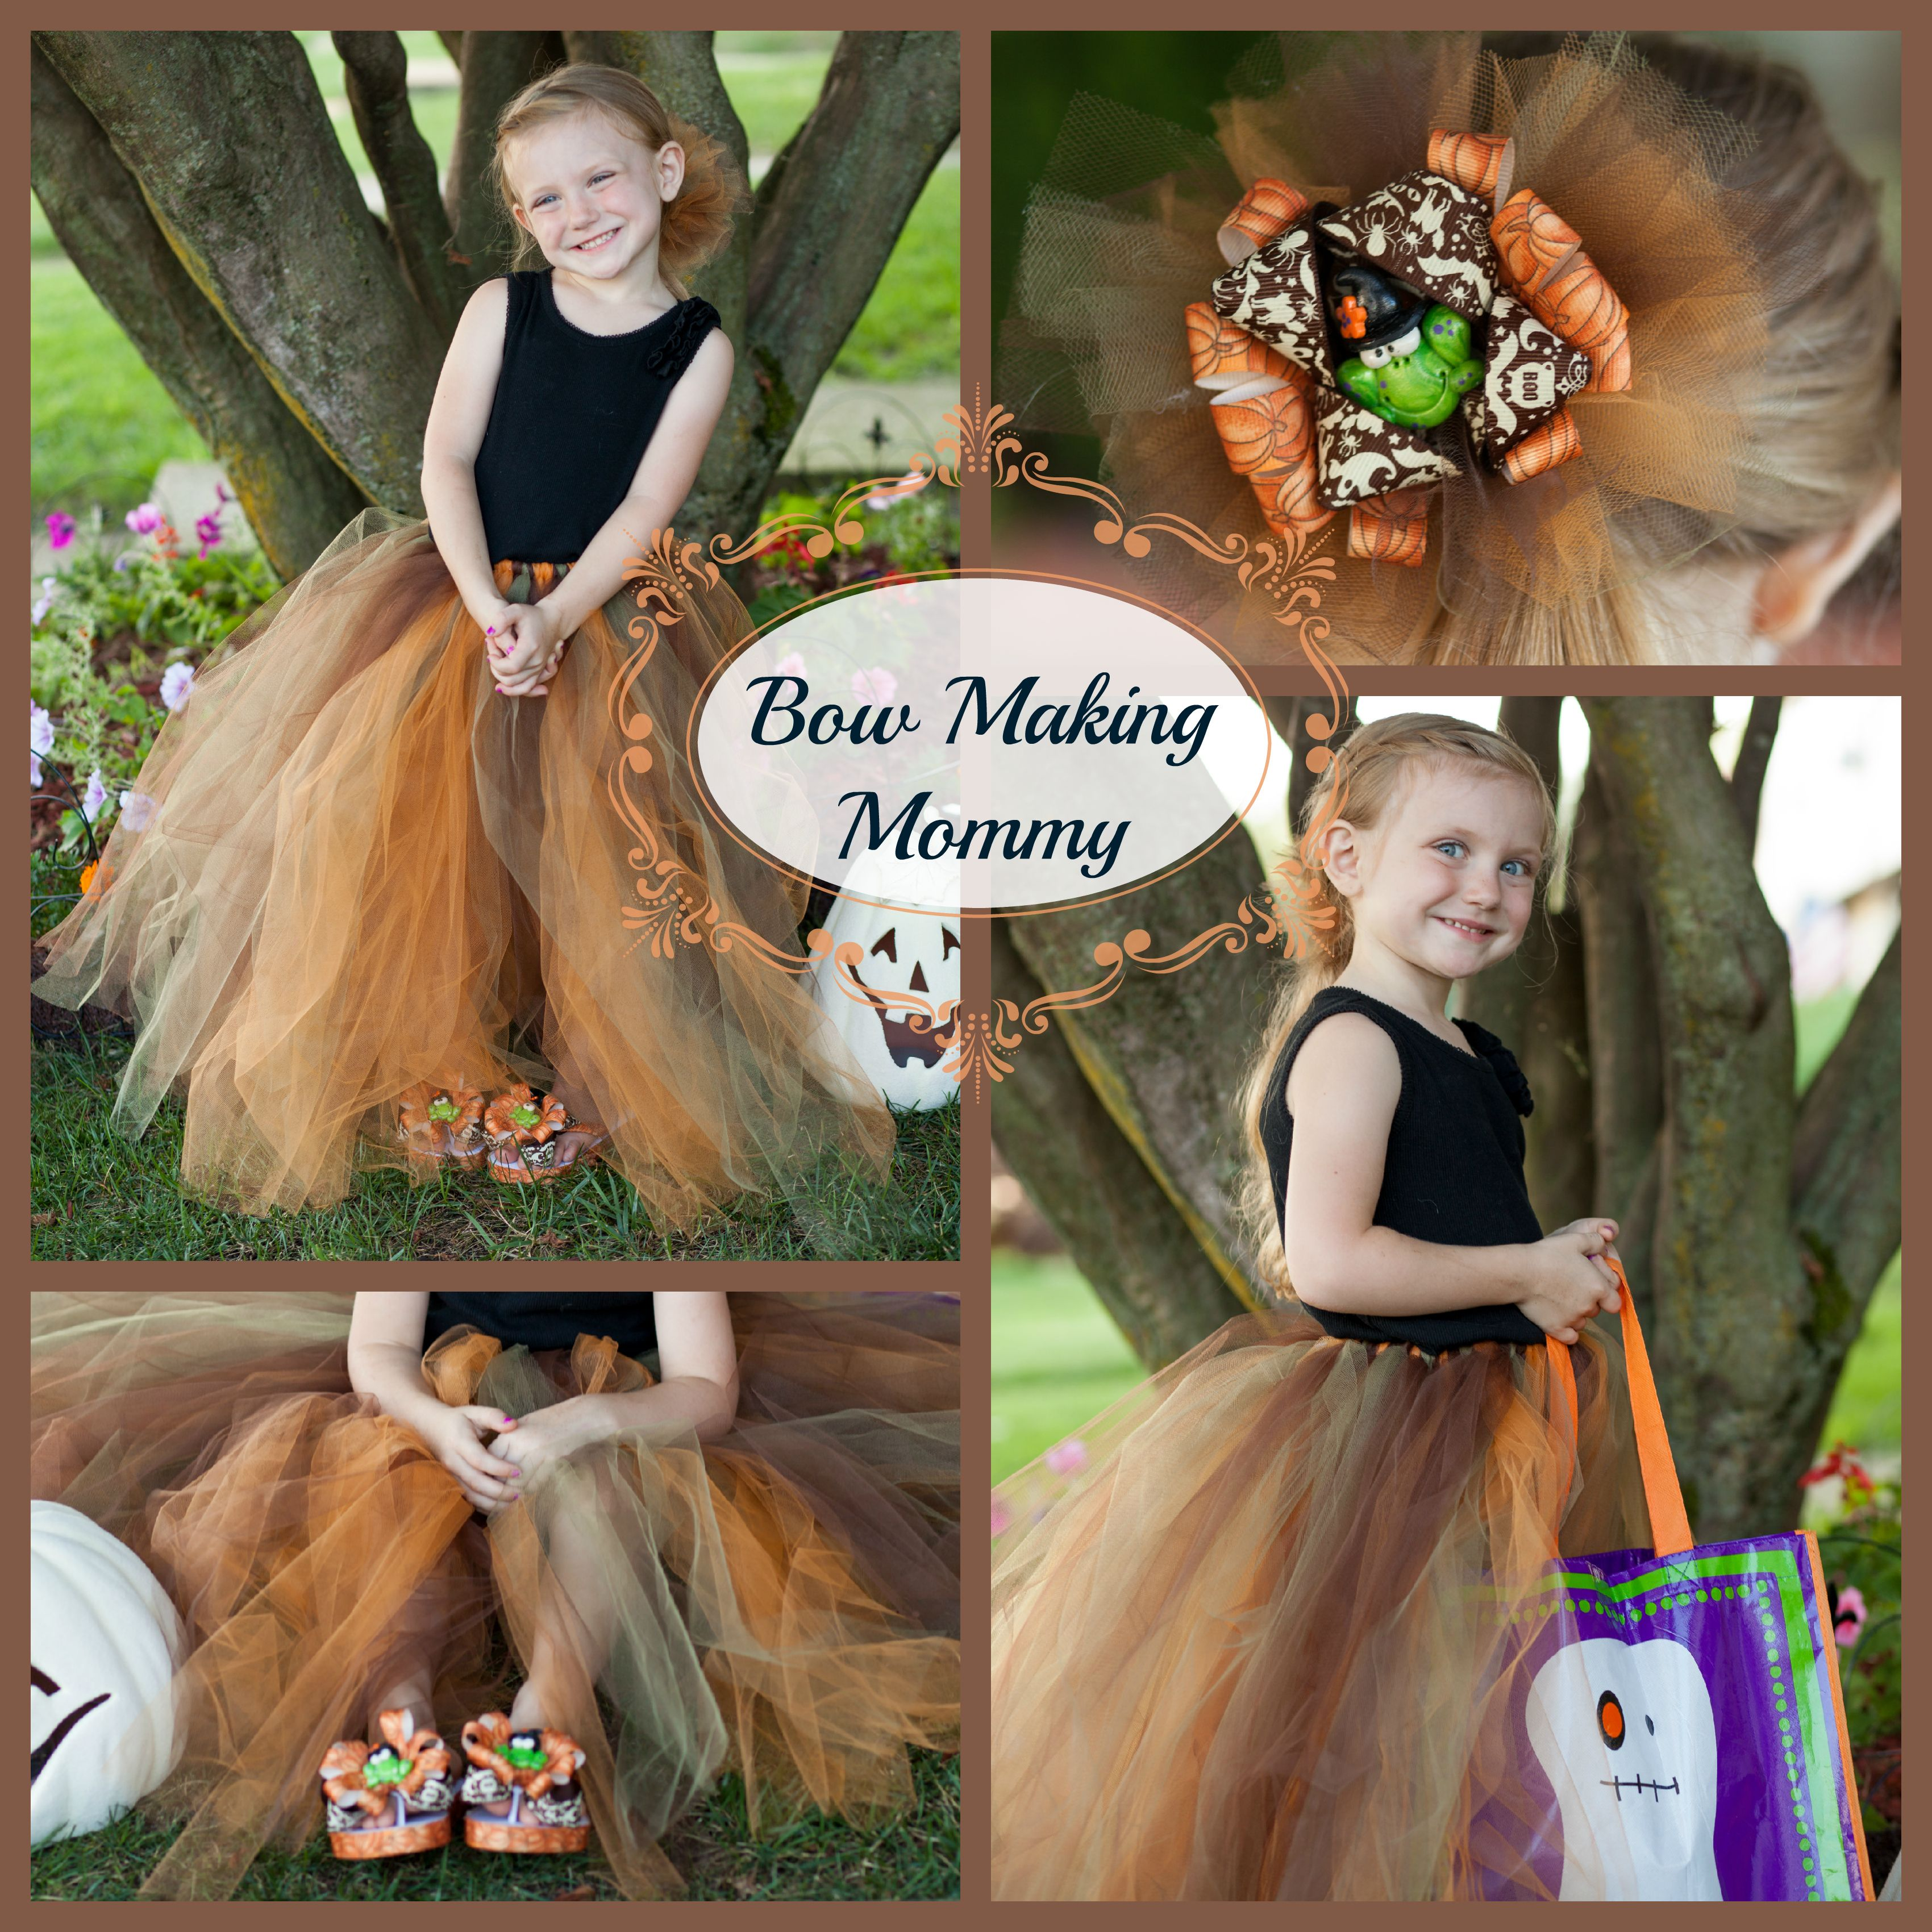 Adorable long tutu skirt super cute!  you can find it at www.facebook.com/bowmakingmommy we have some amazing items!